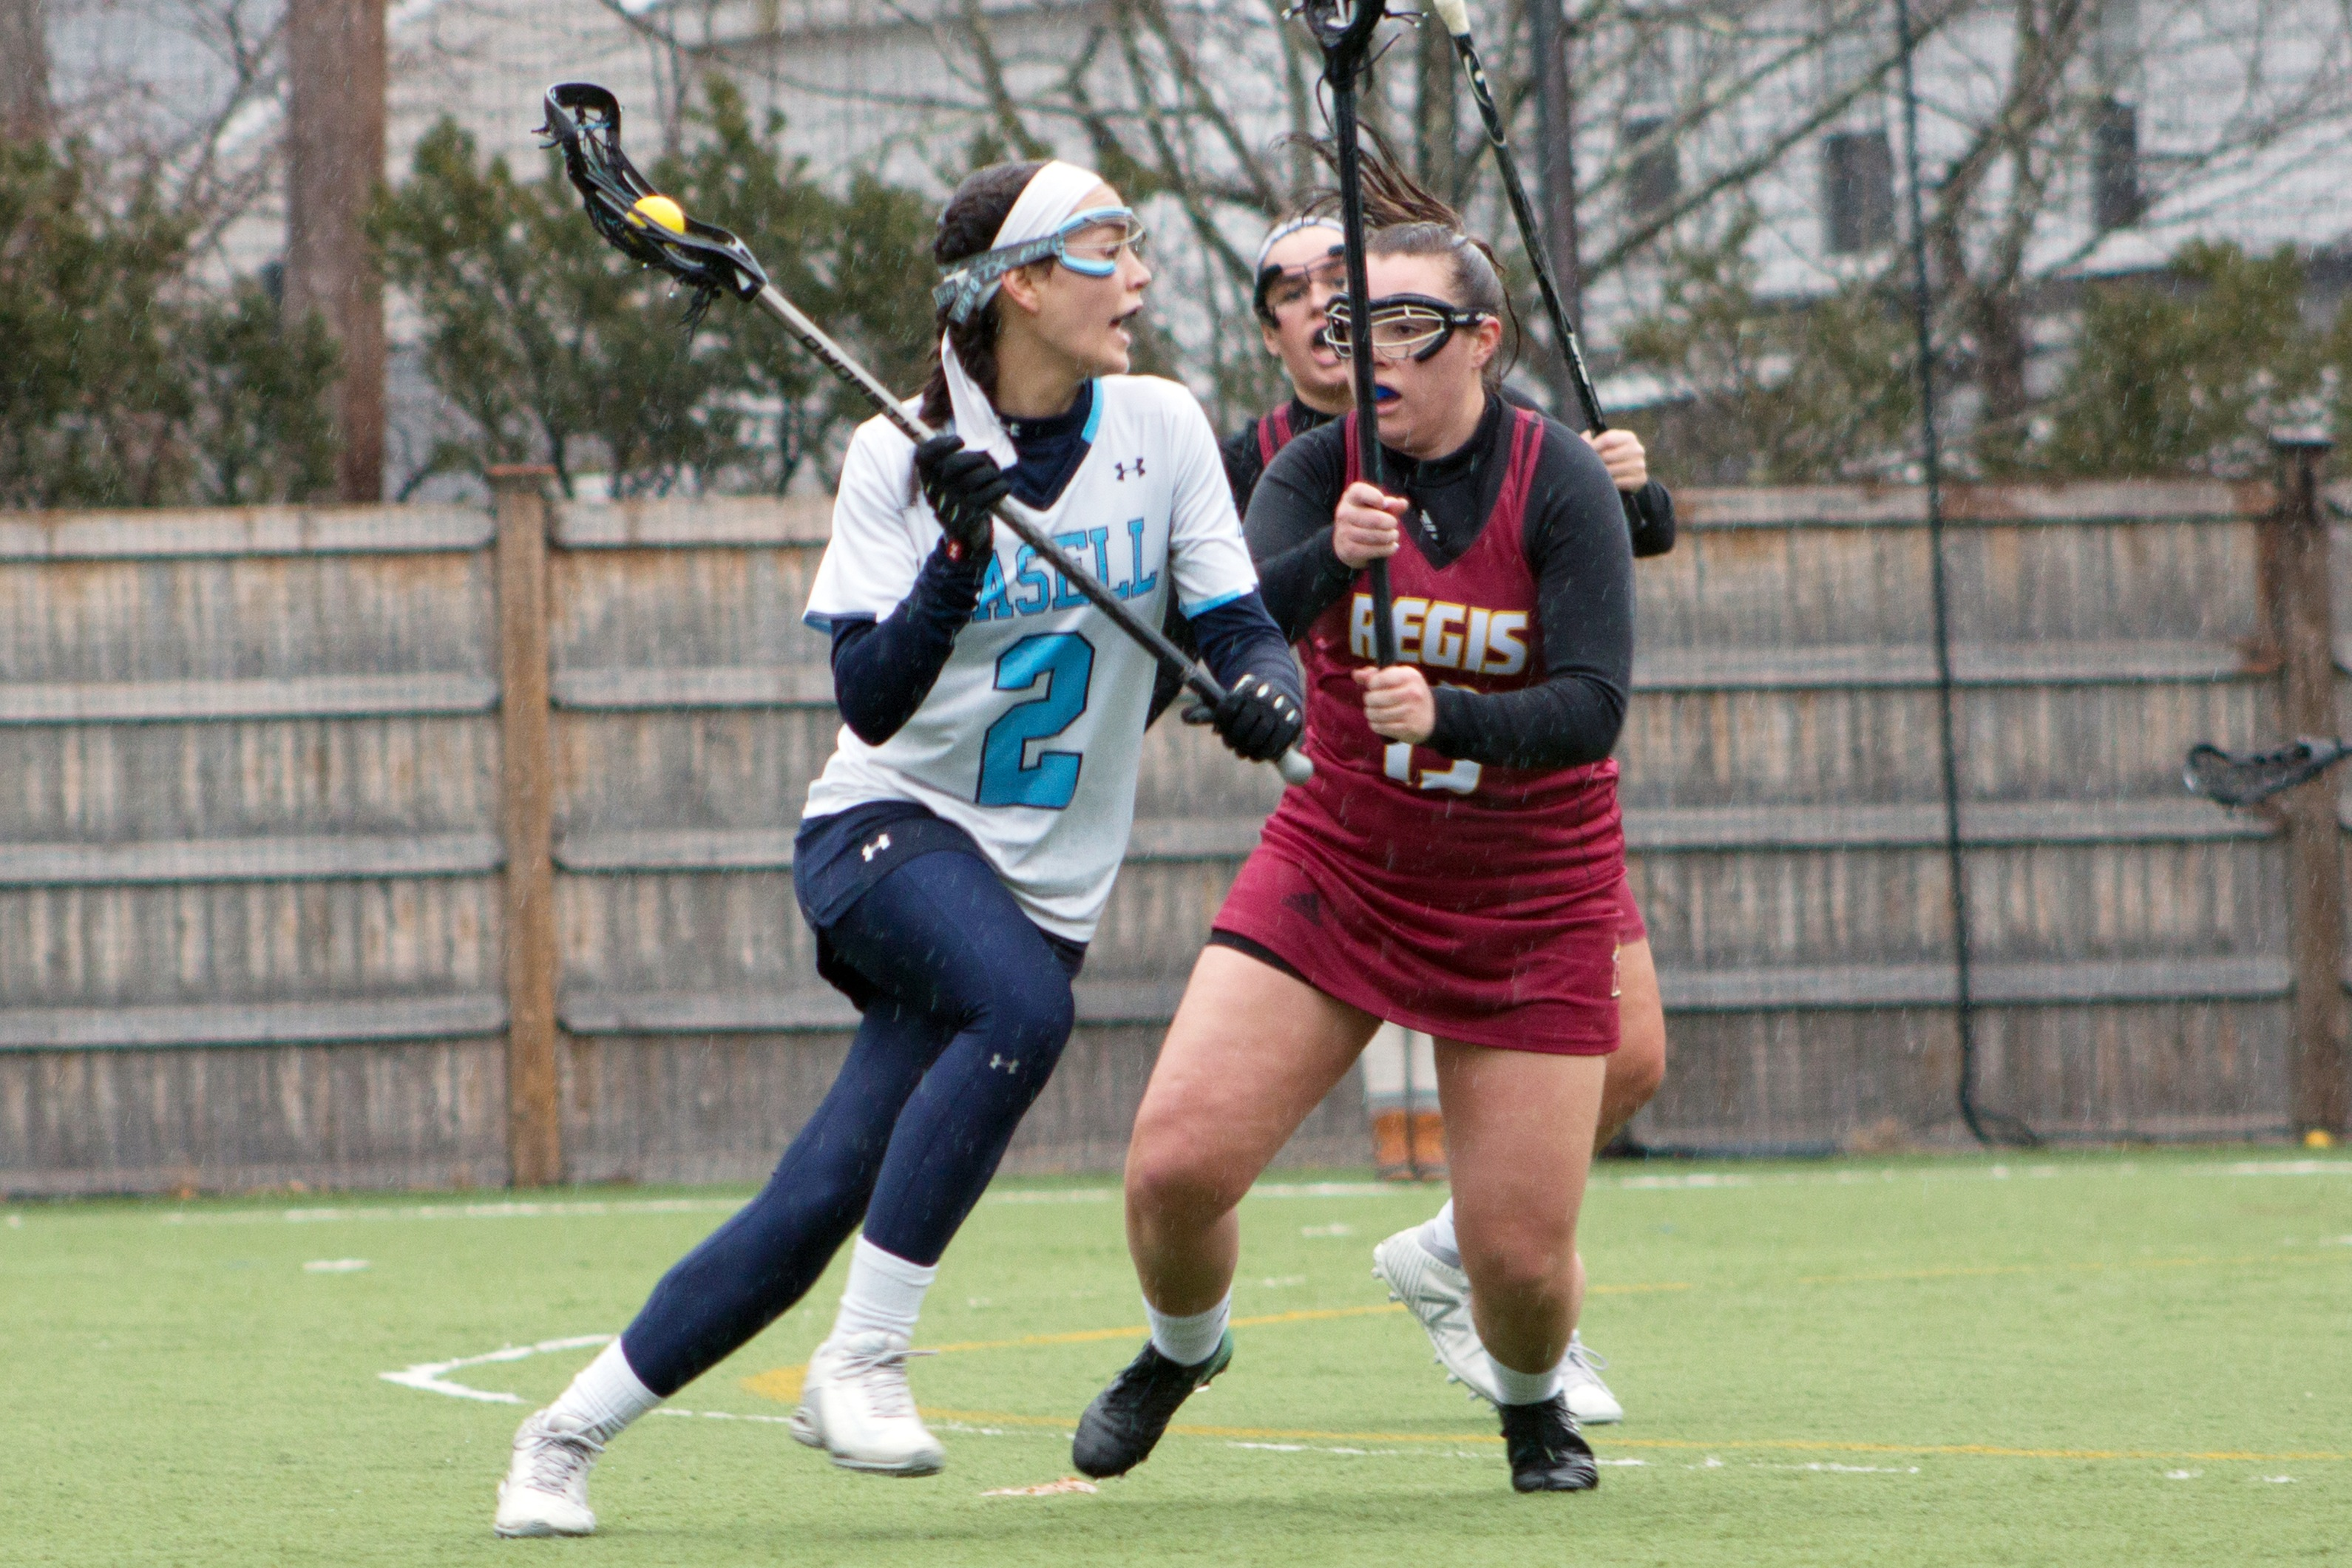 Lasell Women's Lacrosse too strong for Saint Joseph (Conn.)